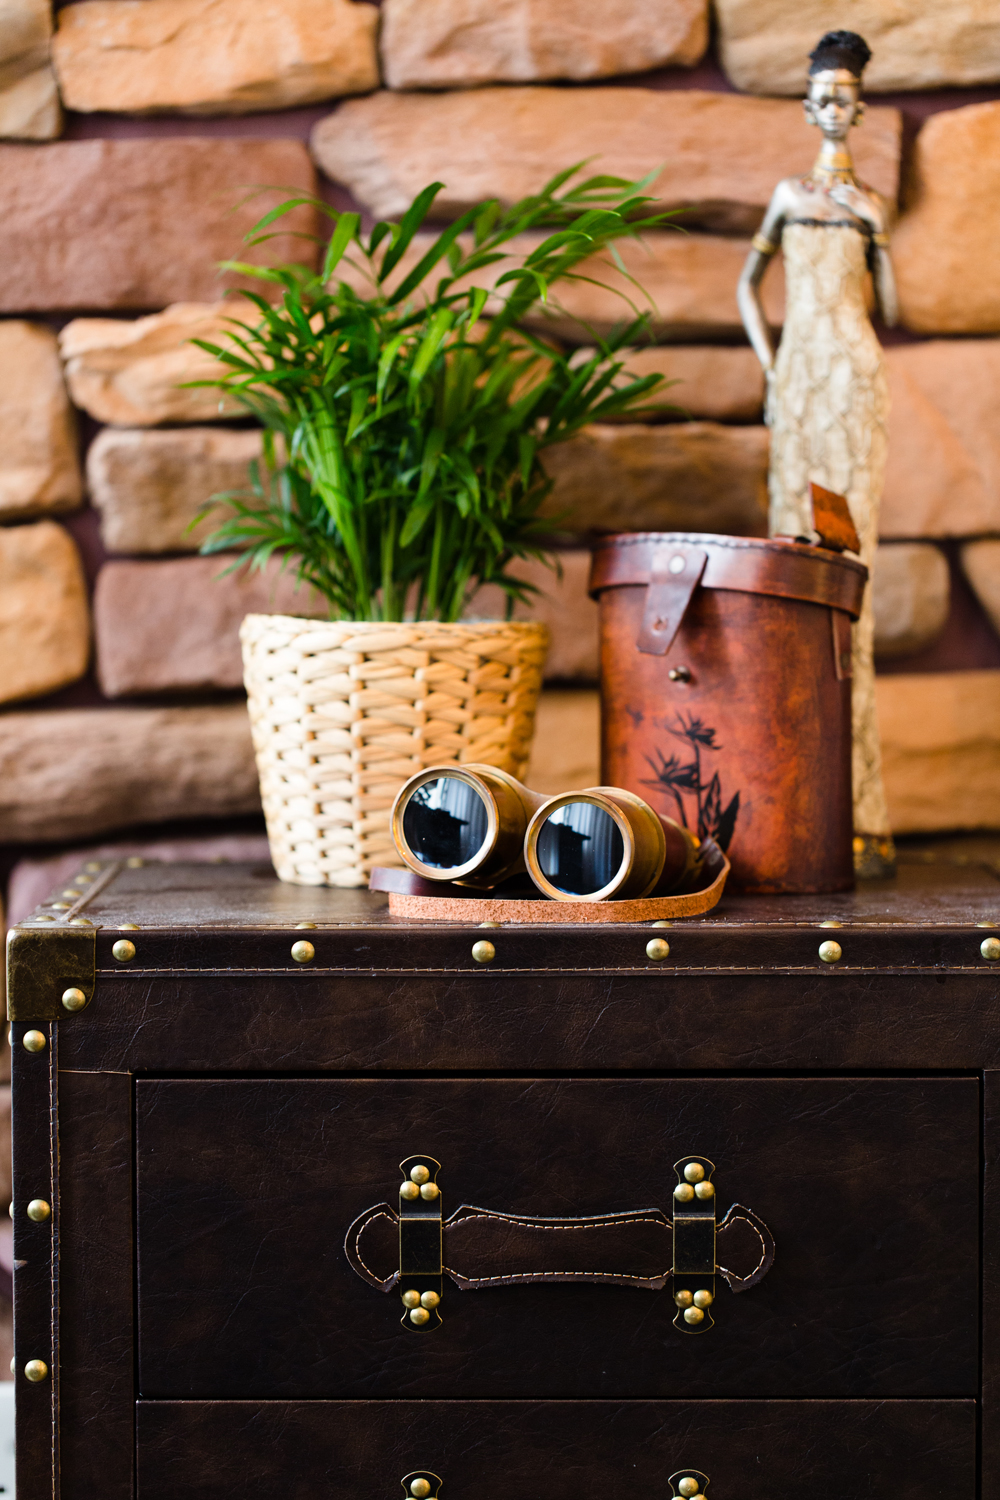 Africa Side Table Vignette | Interior Photography in Hong Kong